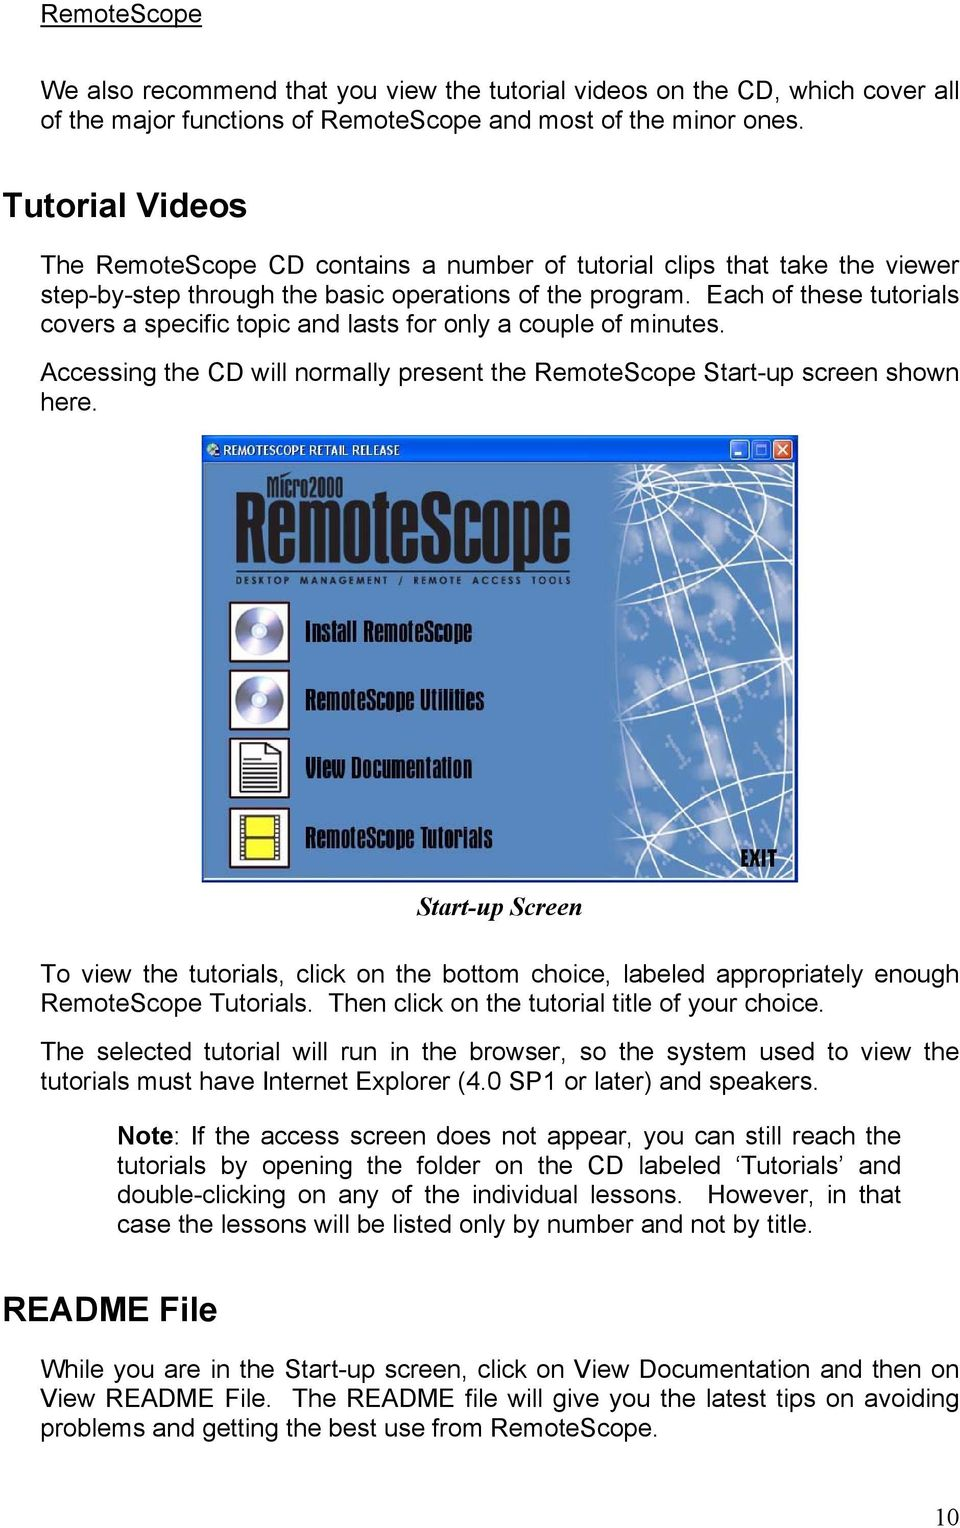 Each of these tutorials covers a specific topic and lasts for only a couple of minutes. Accessing the CD will normally present the RemoteScope Start-up screen shown here.